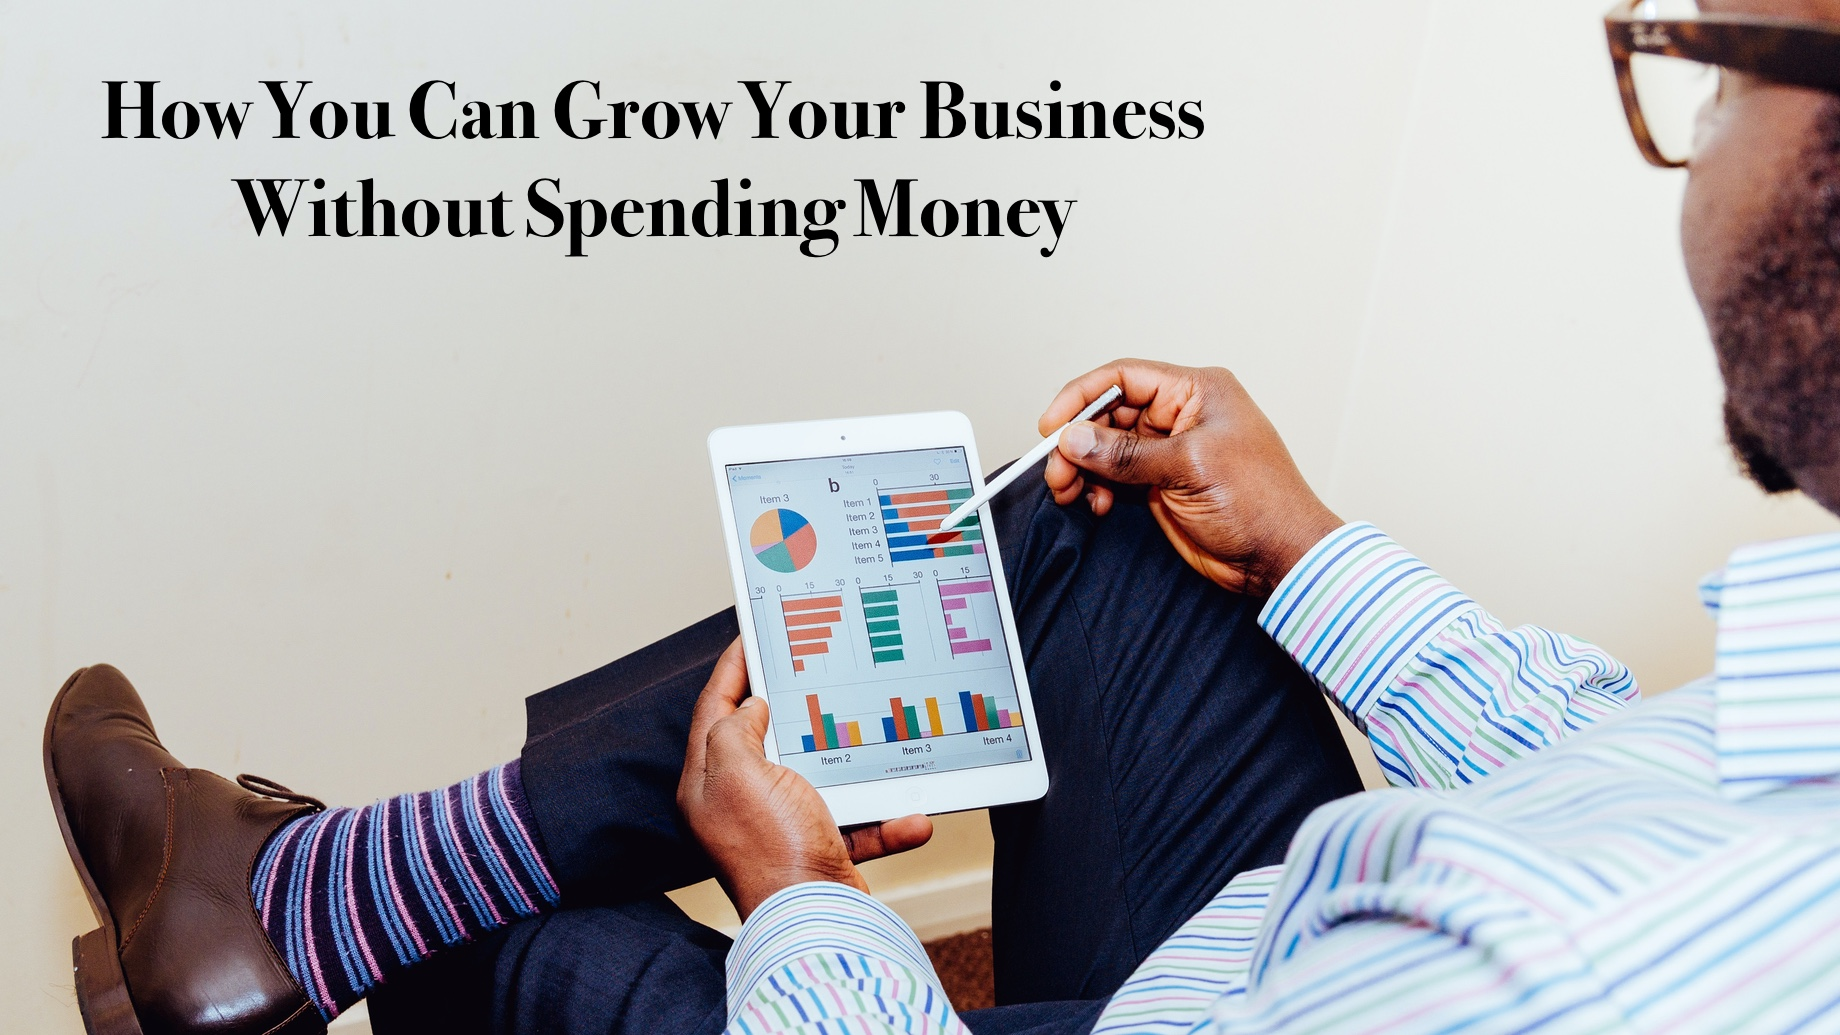 How You Can Grow Your Business Without Spending Money